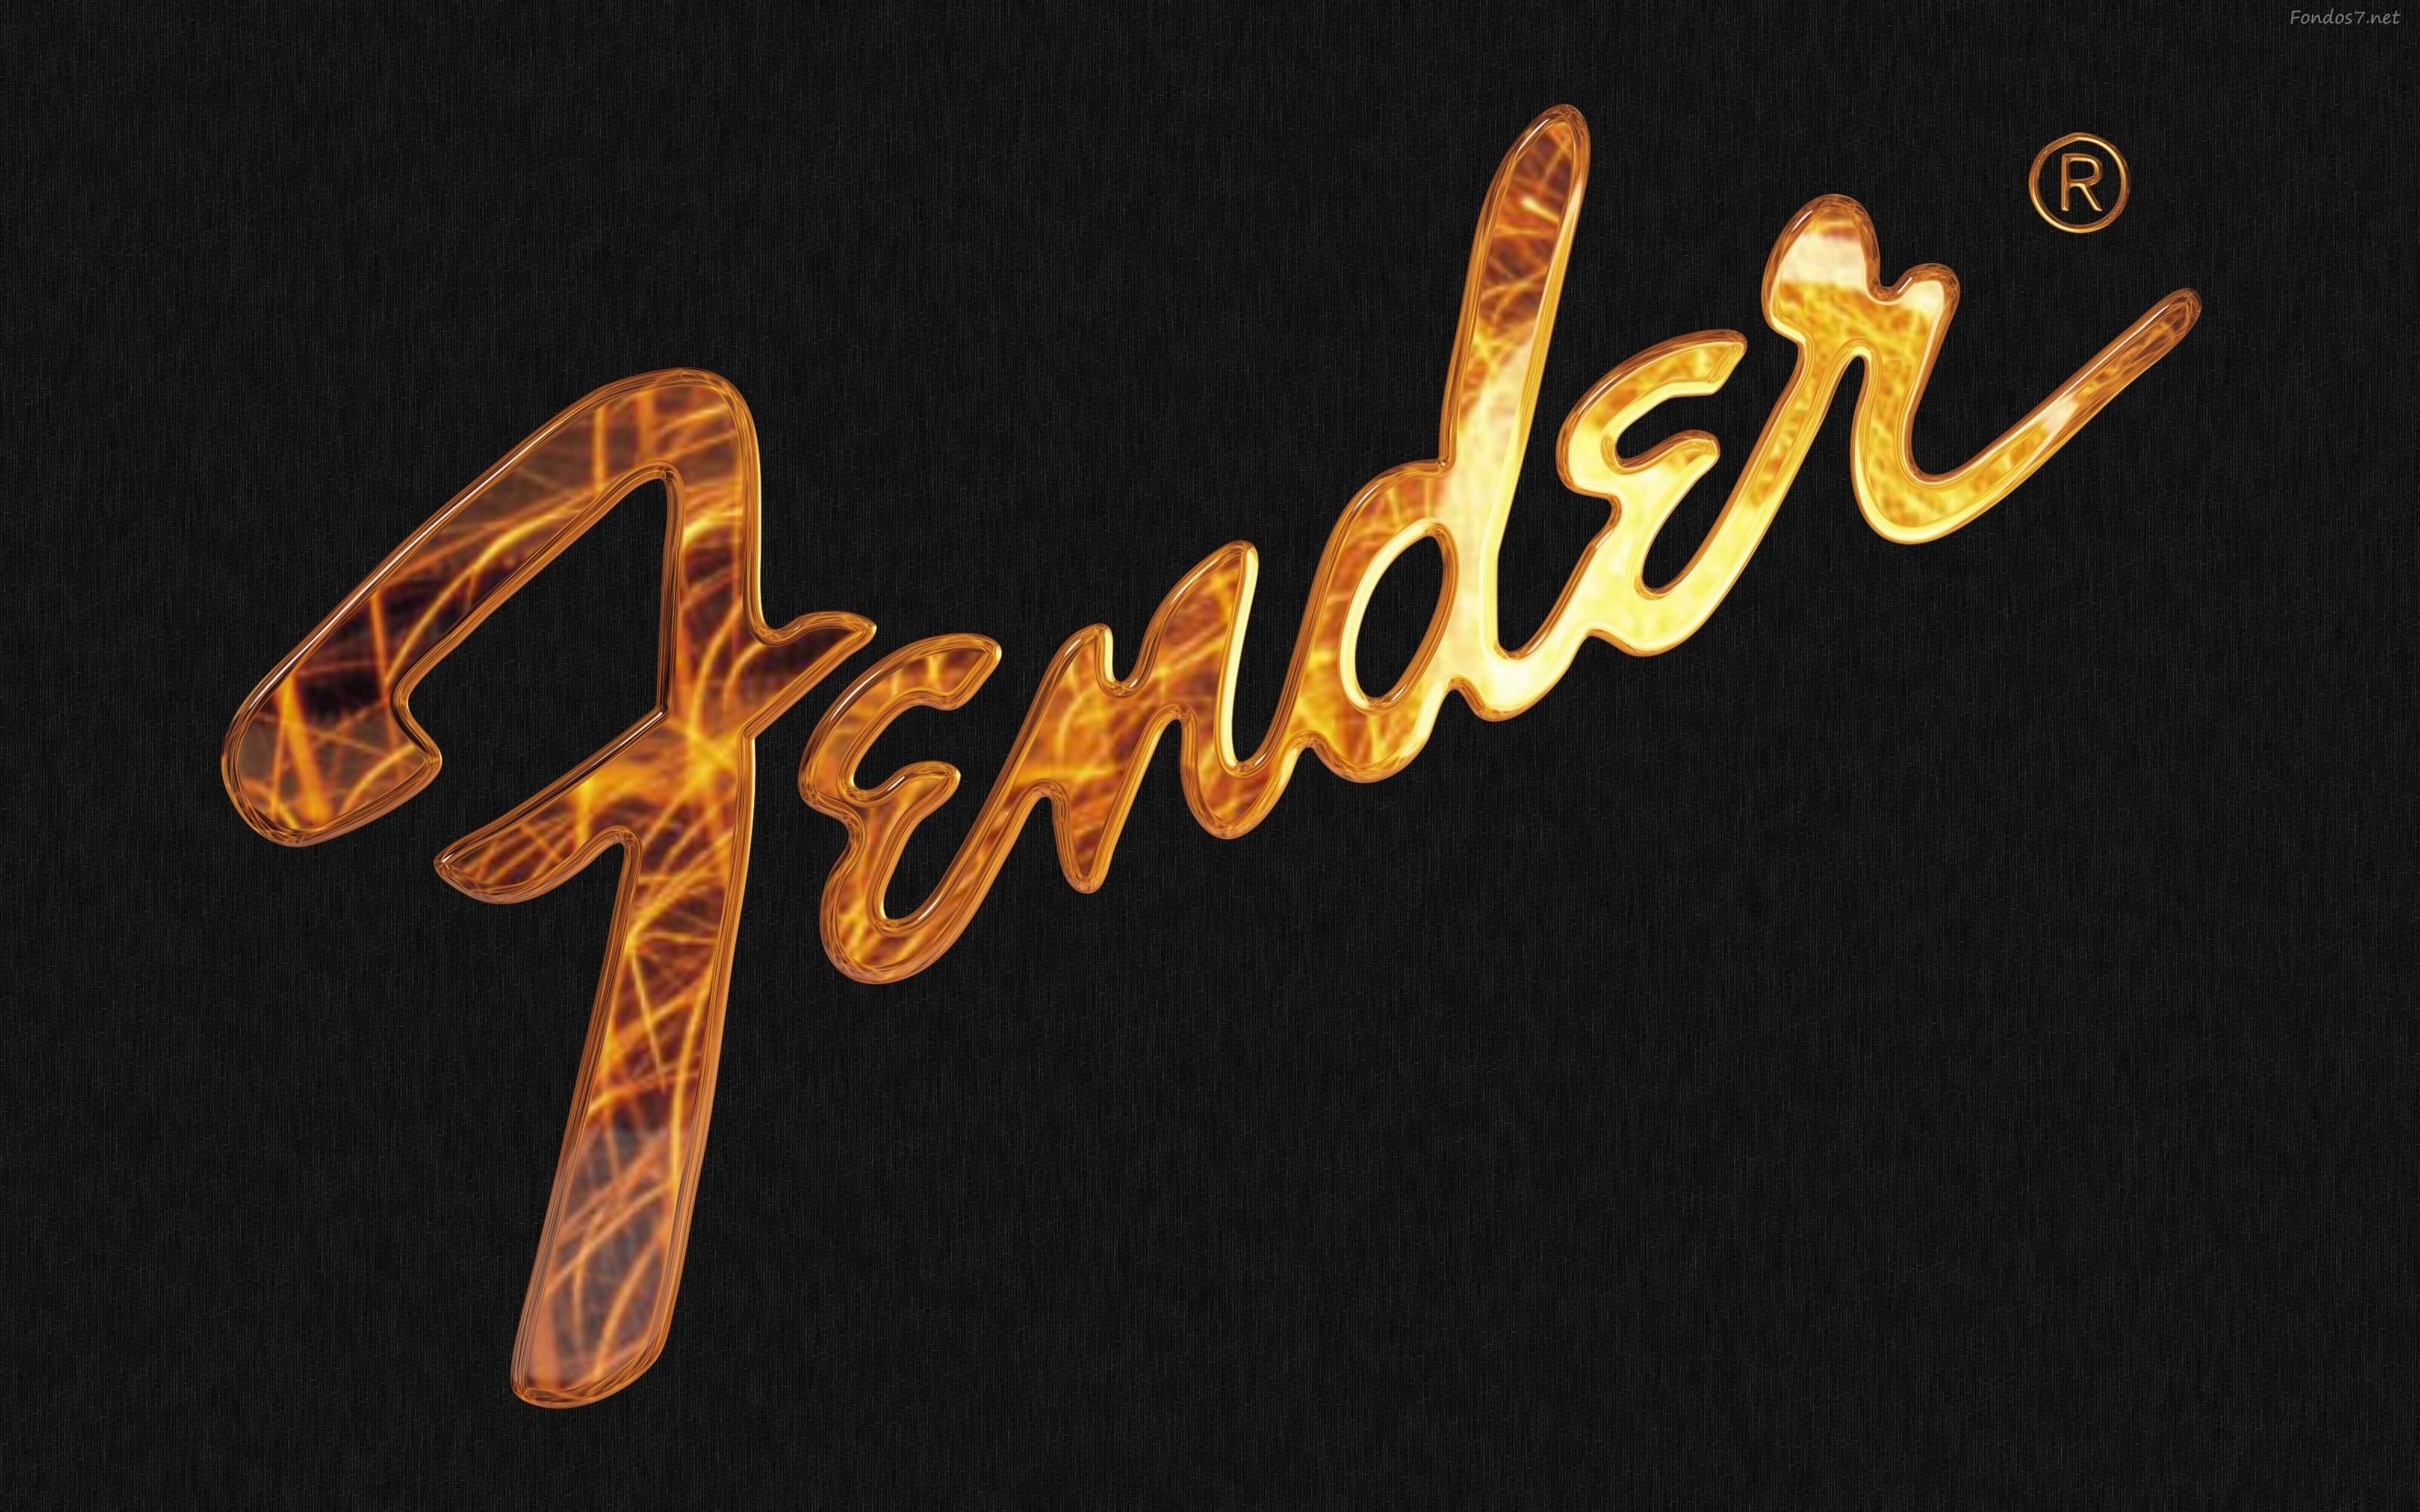 Fender wallpapers wallpaper cave - Fender wallpaper ...